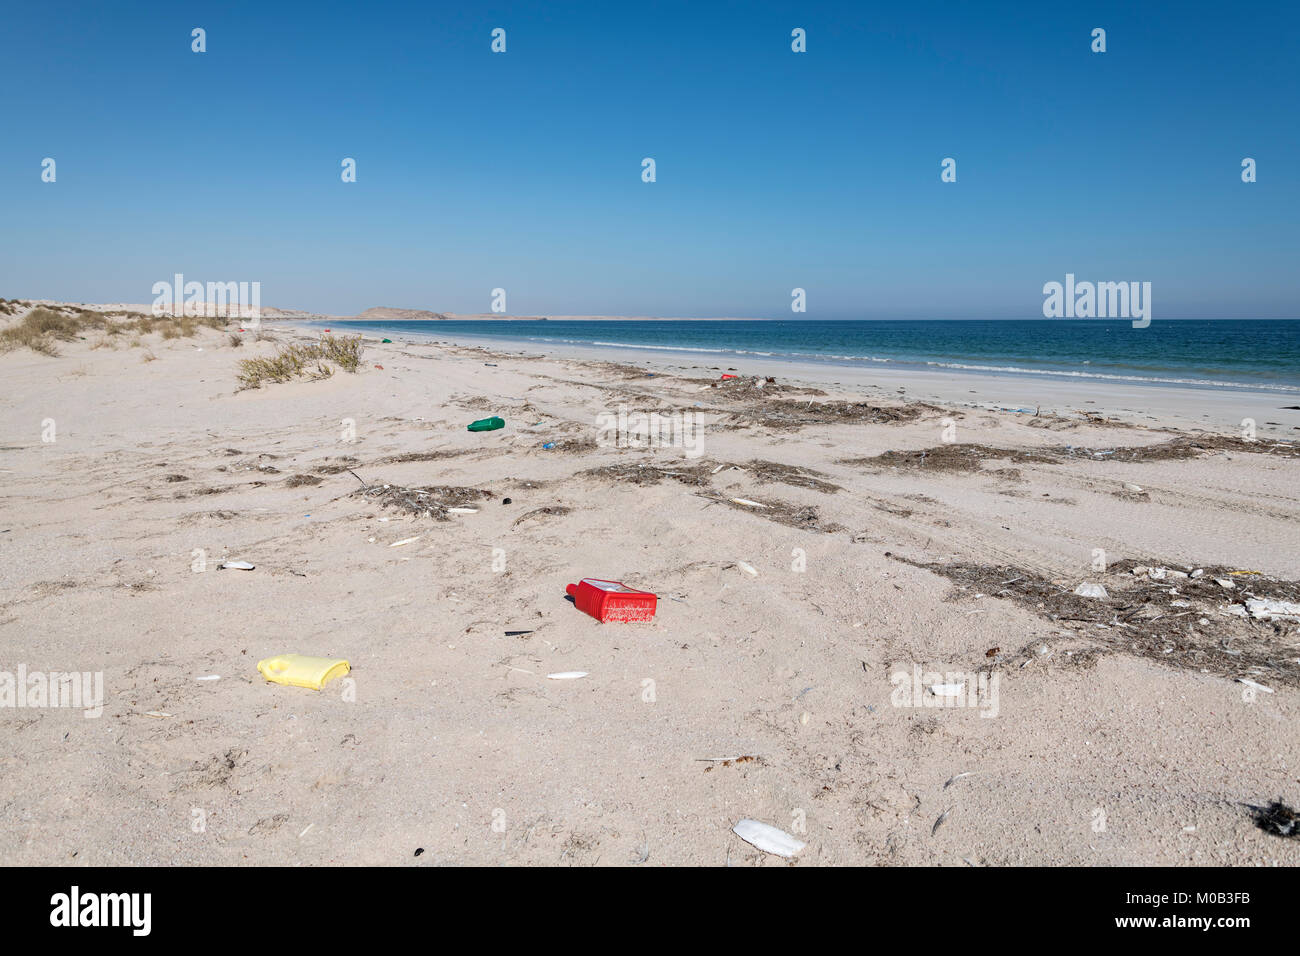 Garbage on the beach left on the beach by people and from the sea. Oman - Stock Image